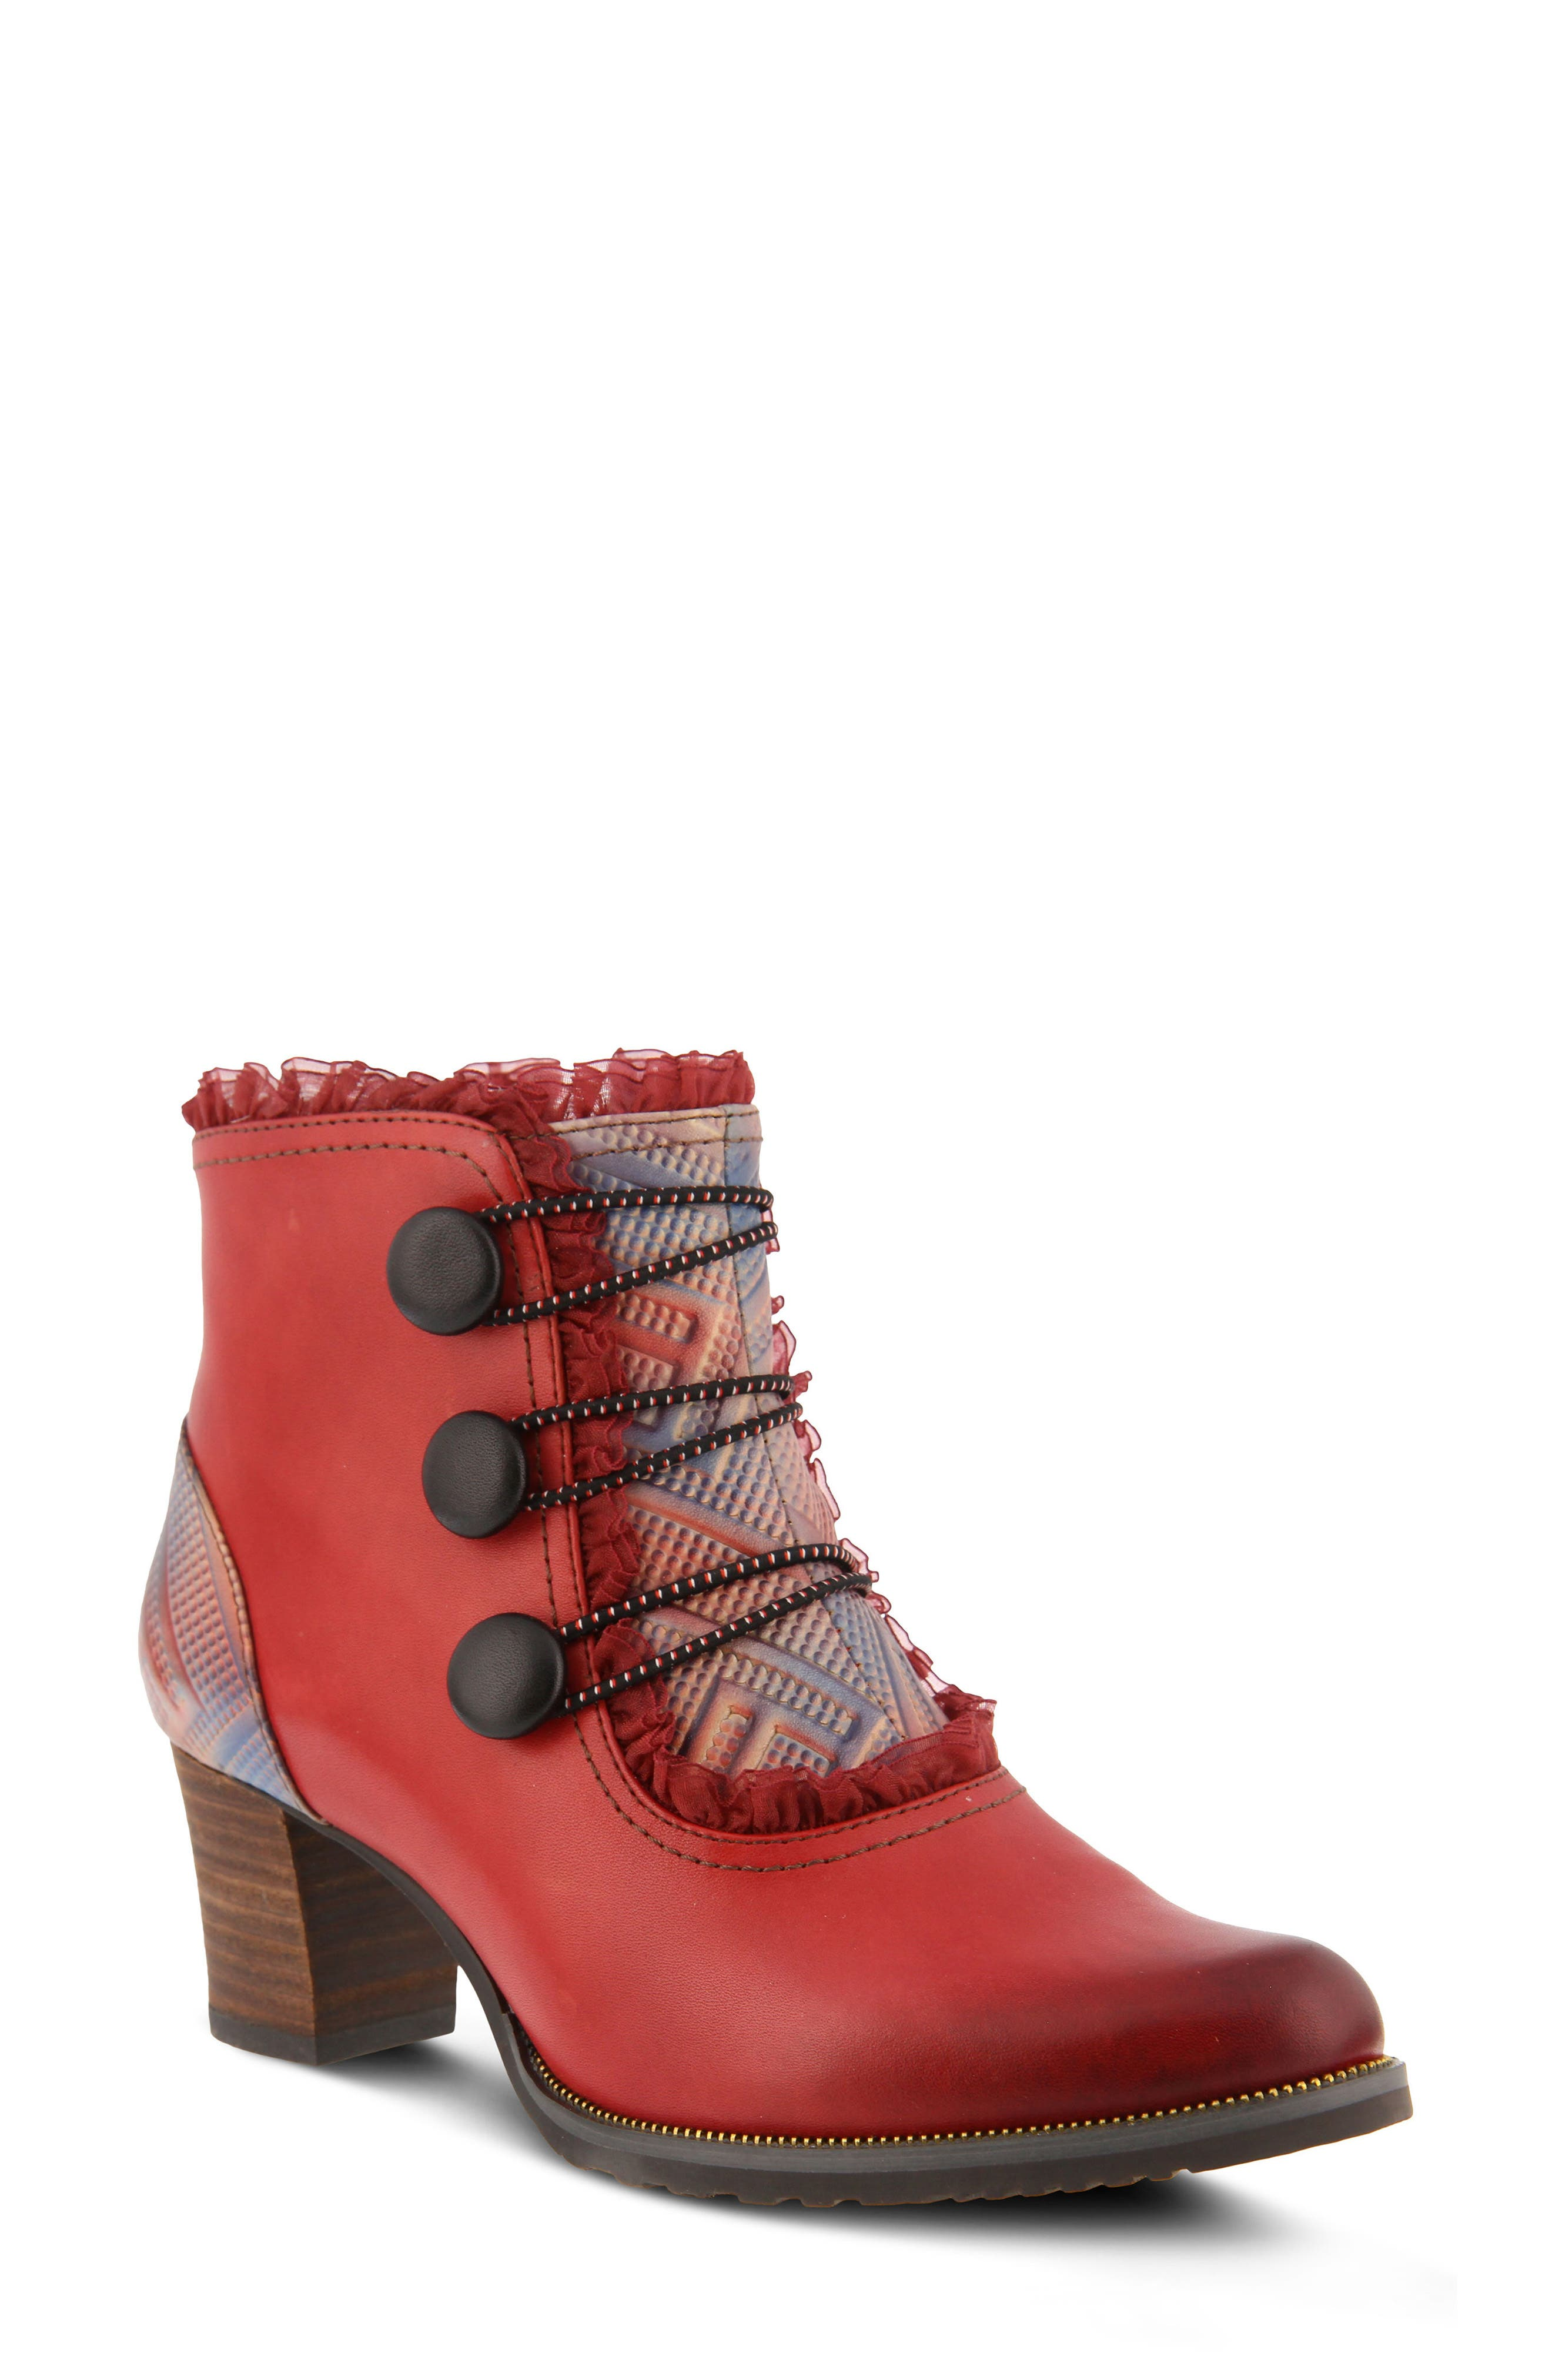 L'Artiste Conchita Boot,                         Main,                         color, Red Leather